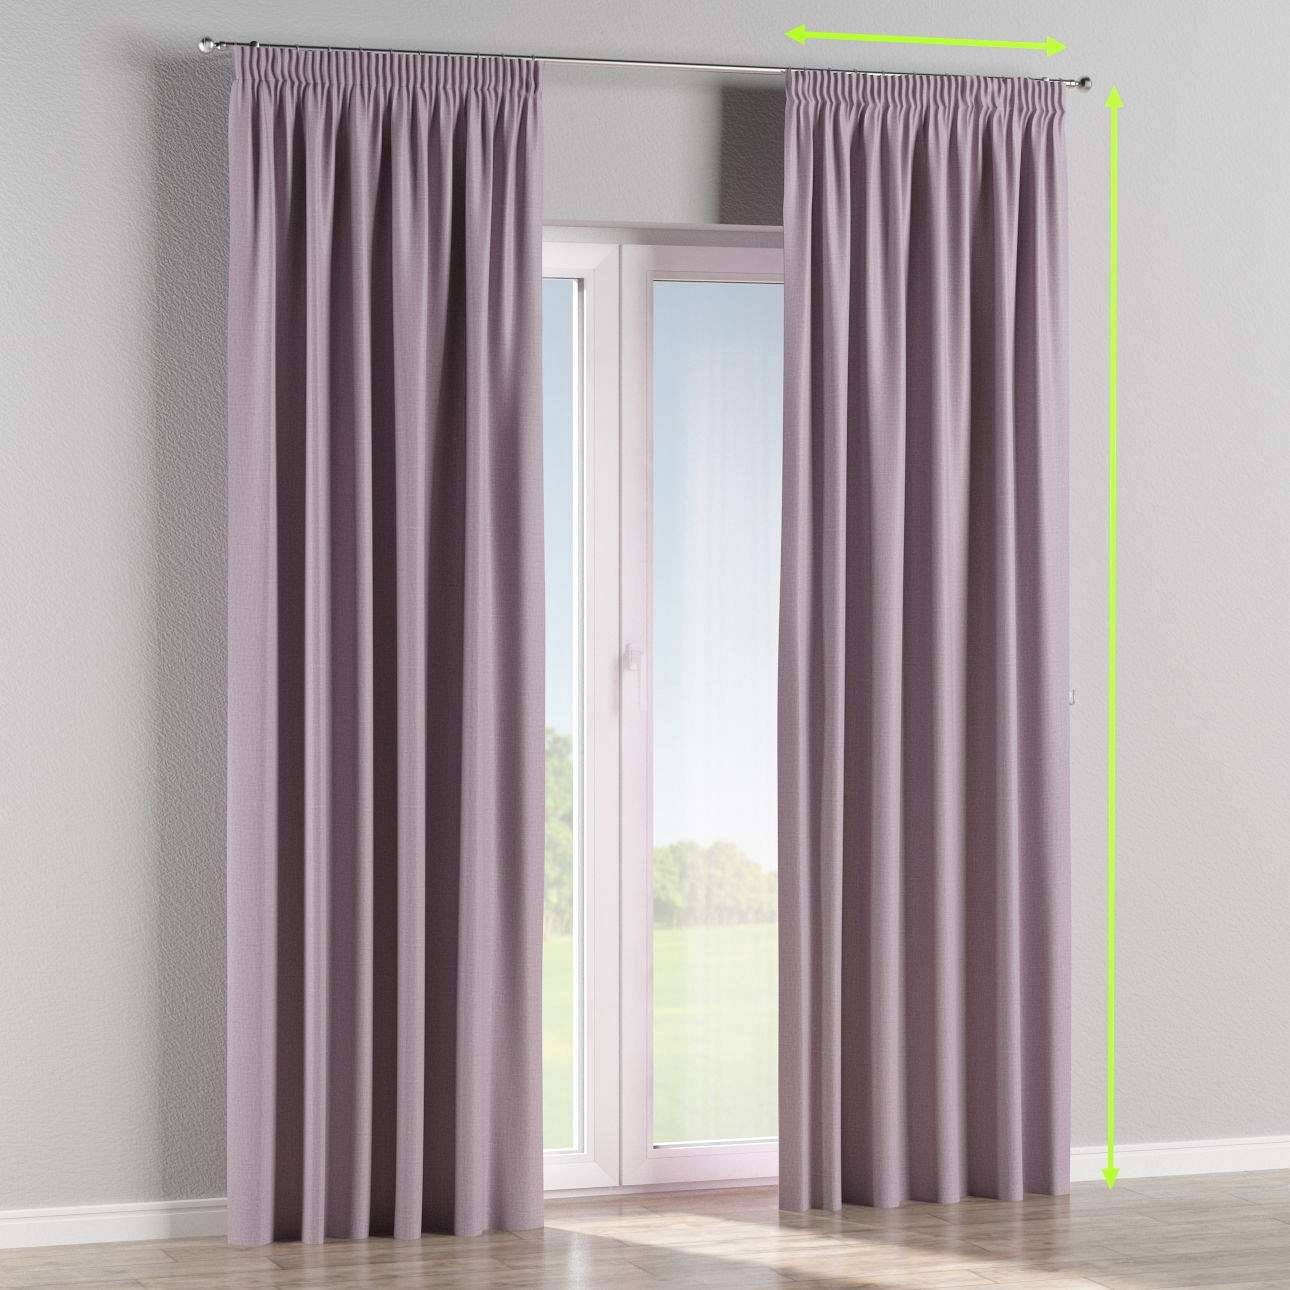 Pencil pleat curtains in collection Blackout, fabric: 269-60